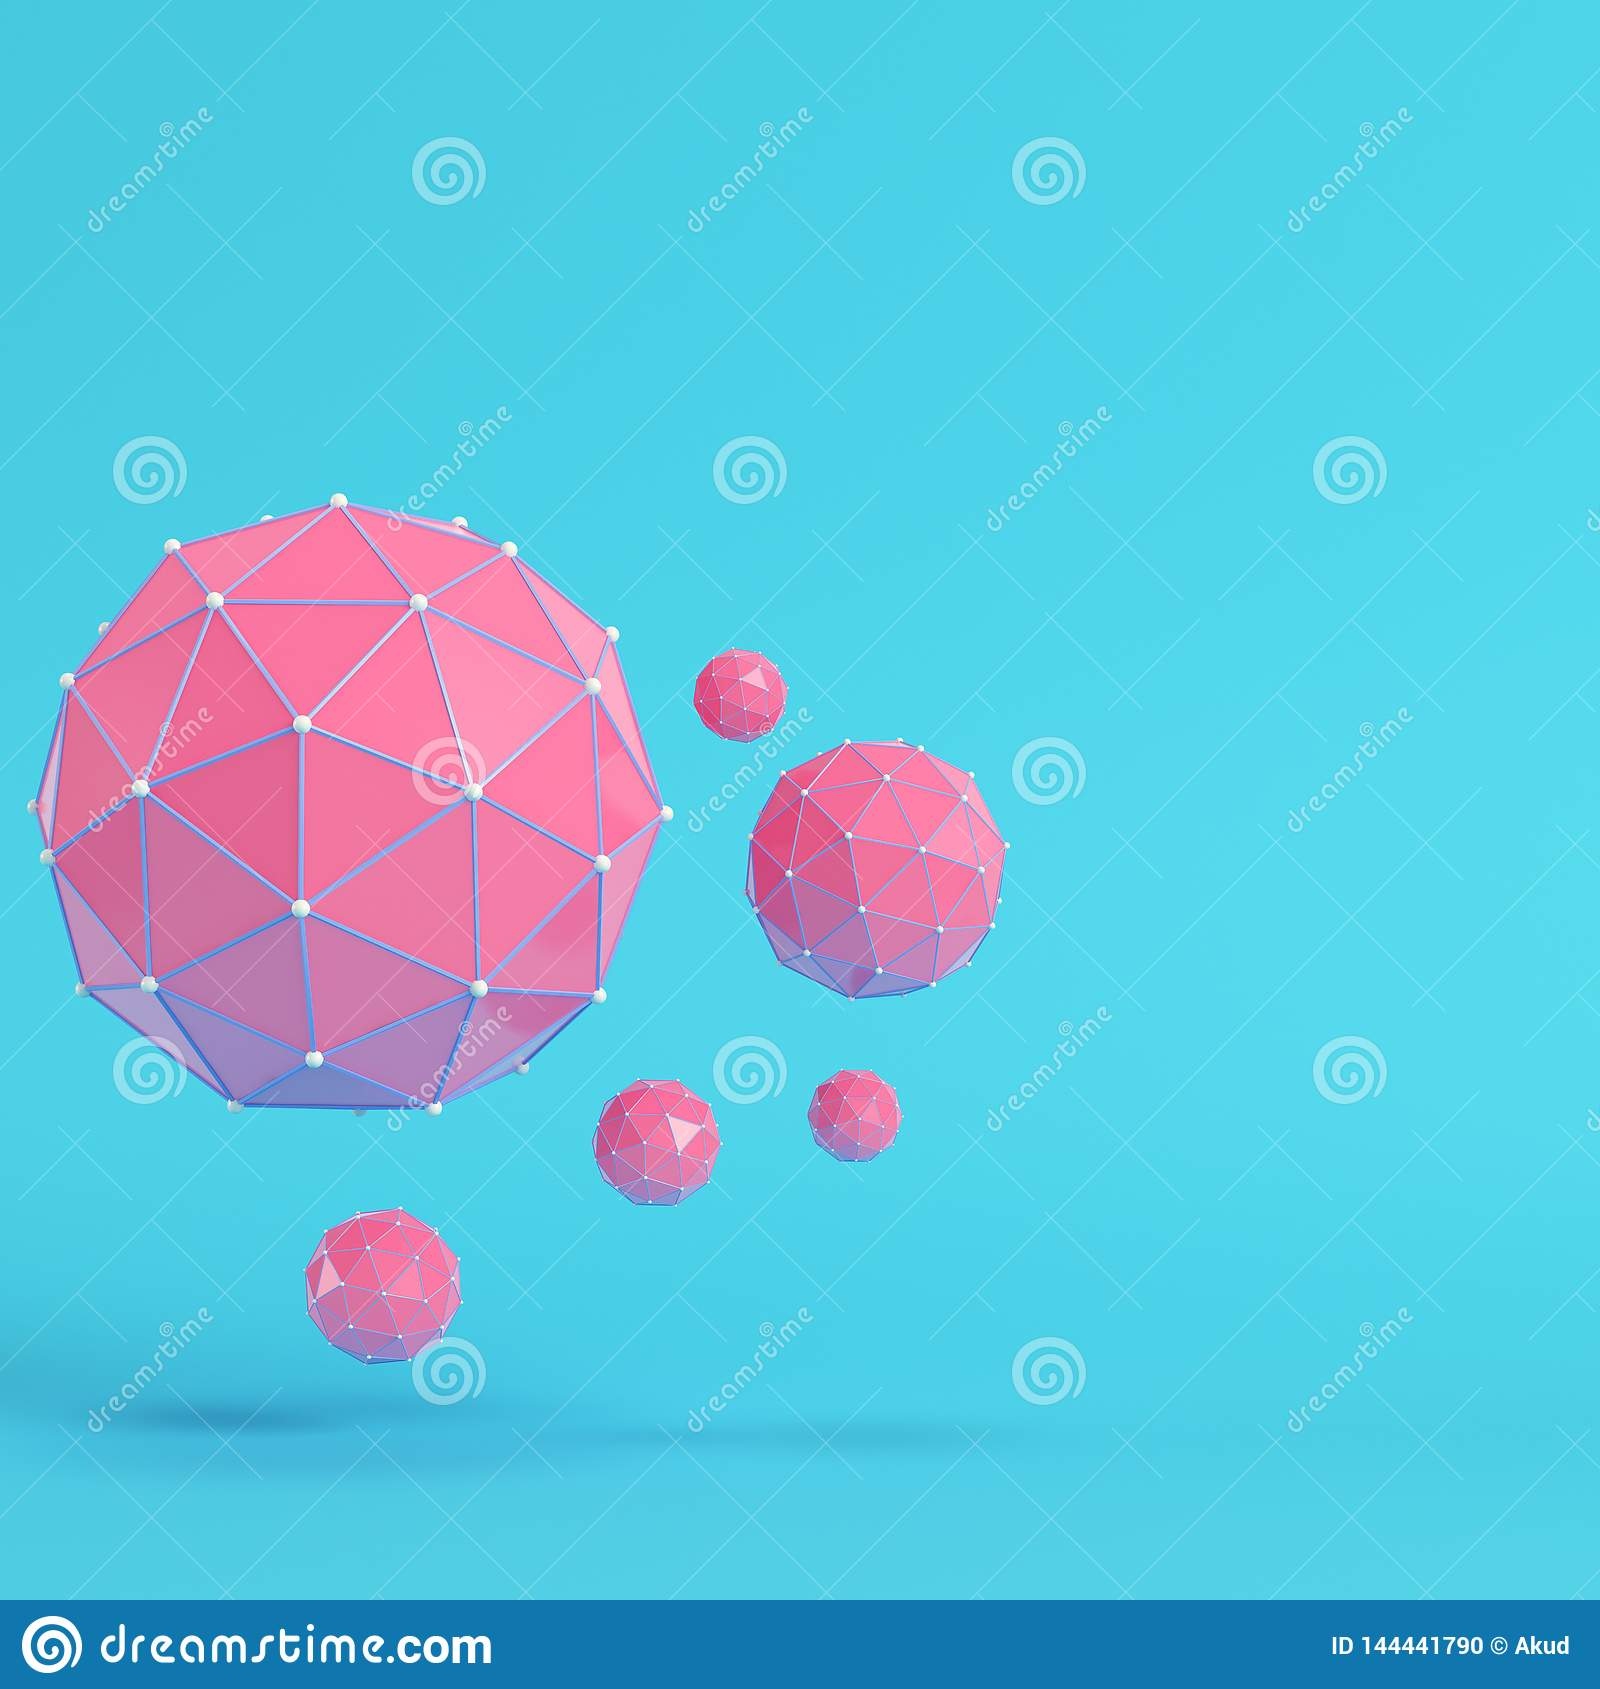 7898a868 Pink low poly abstract spheres on bright blue background in pastel colors.  Minimalism concept. 3d render. More similar stock illustrations